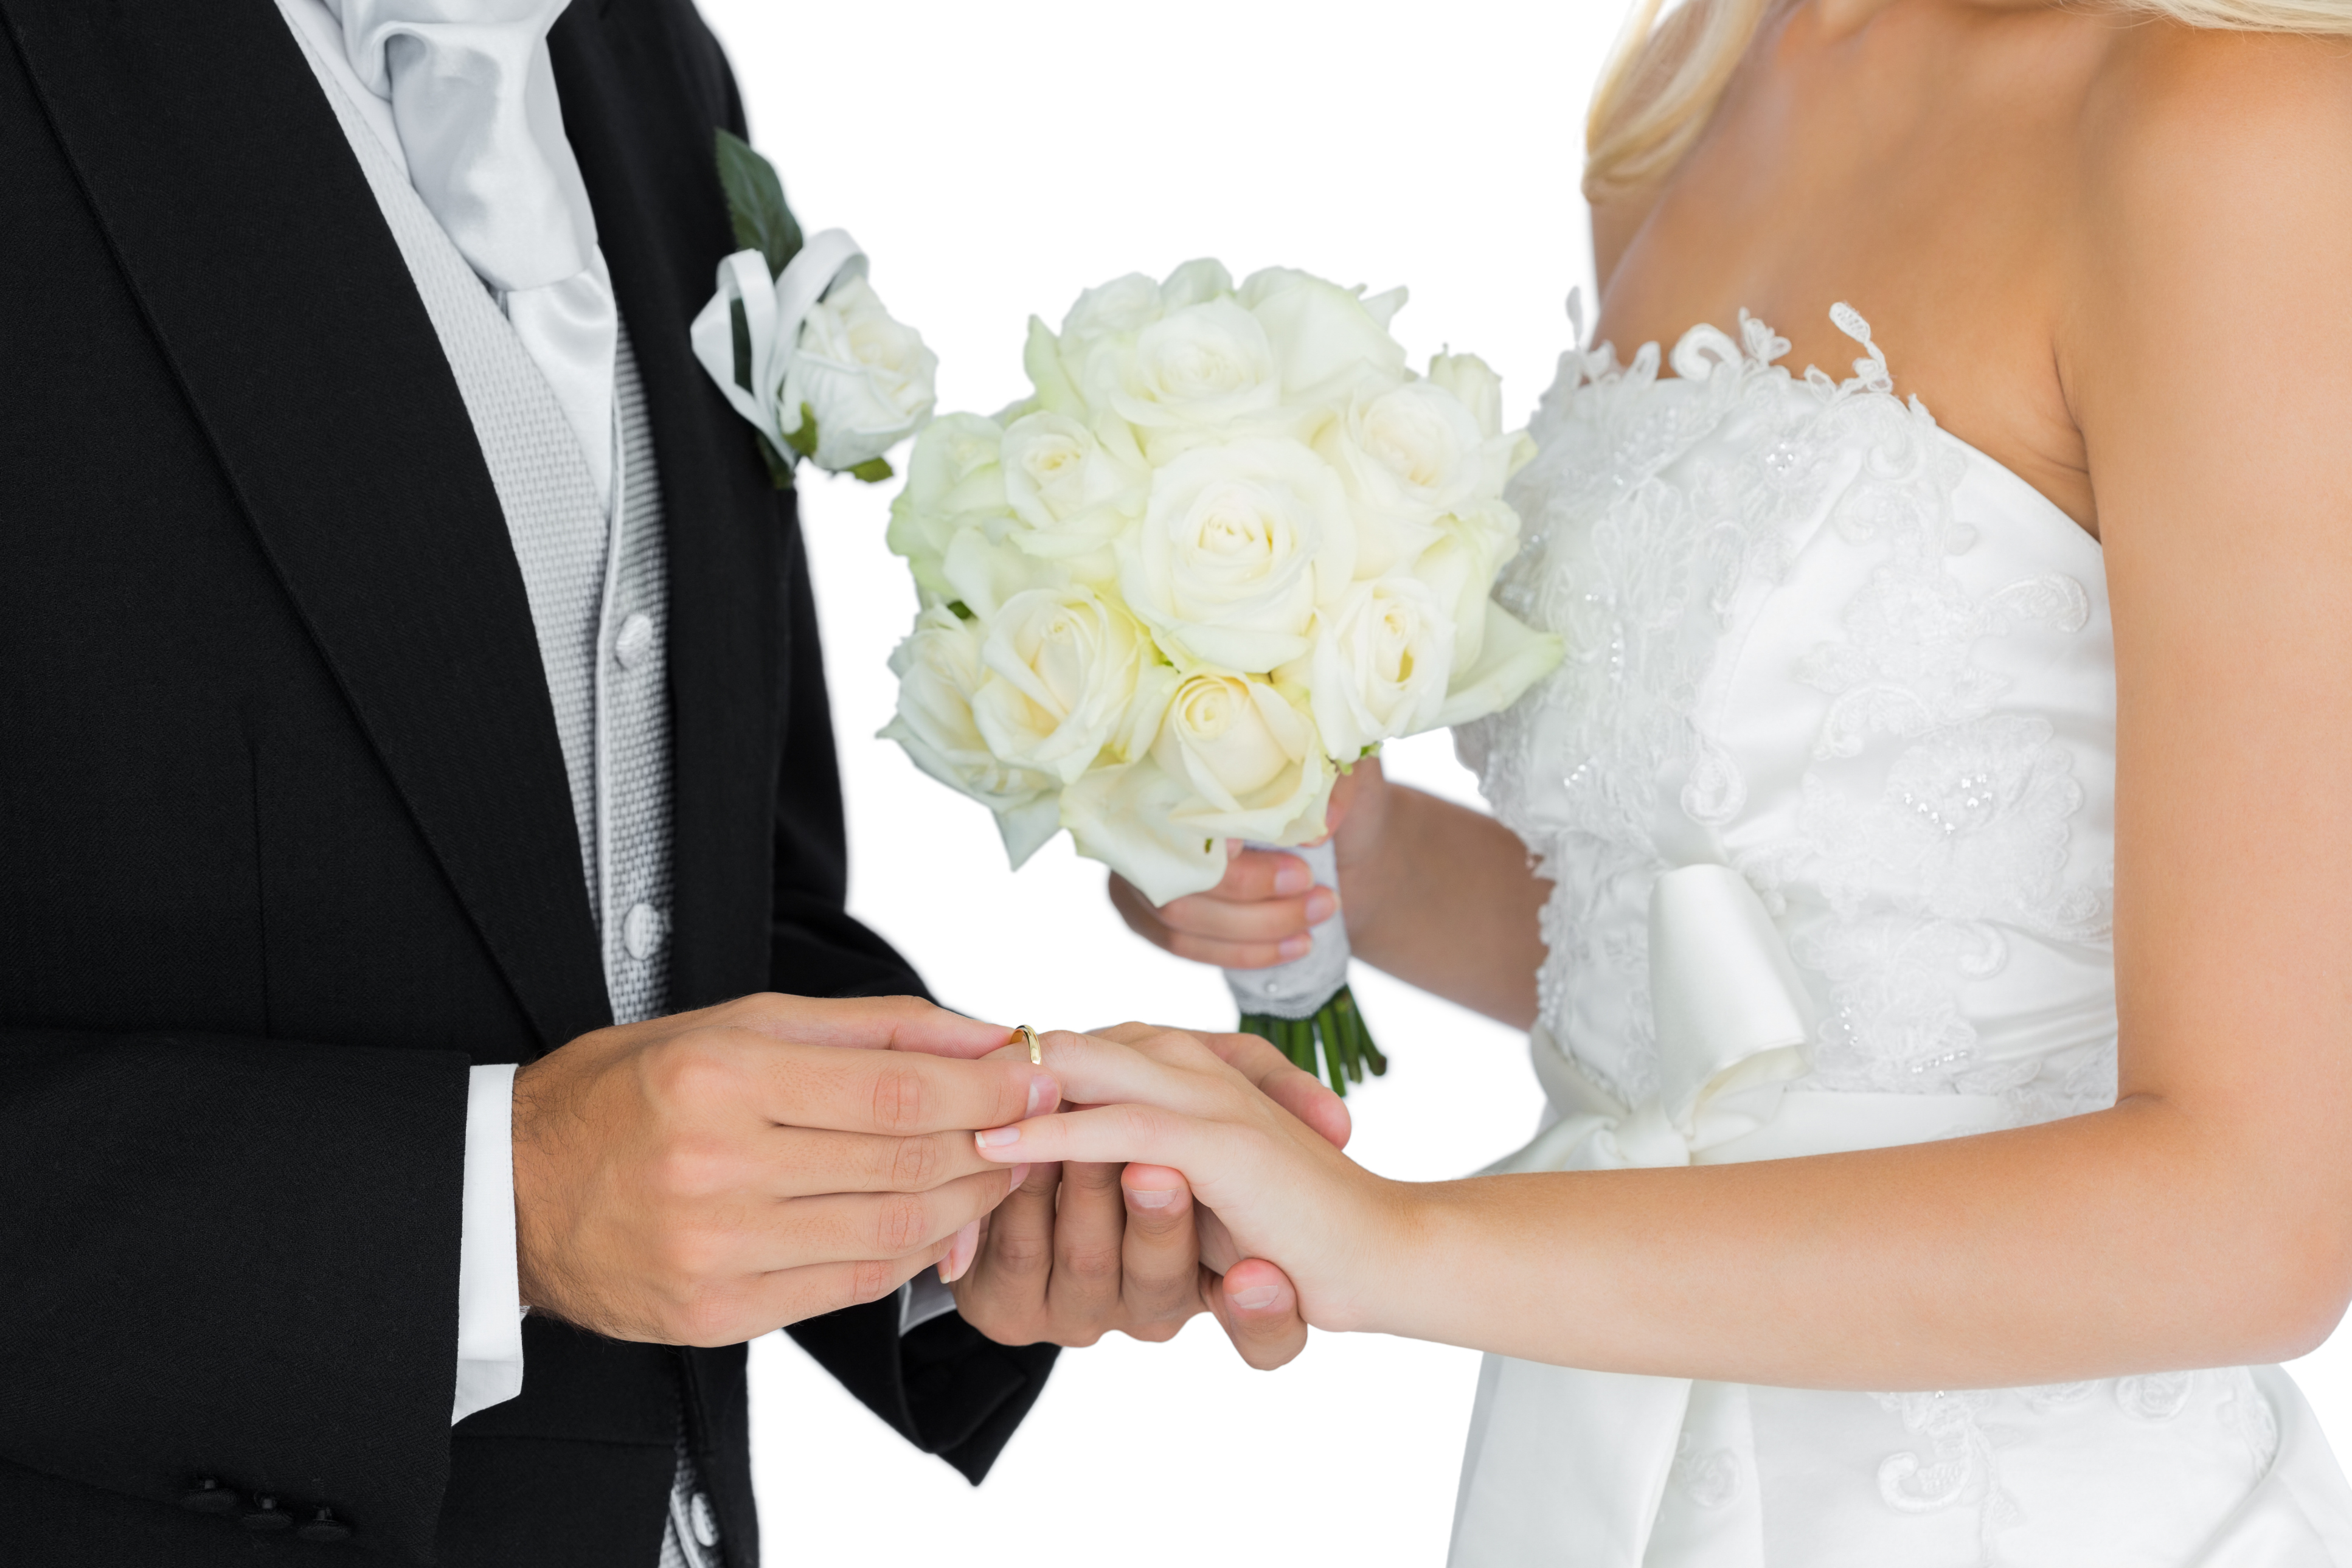 9 reasons why you should get married for yourself and for america us news - Mariage Forc Islam